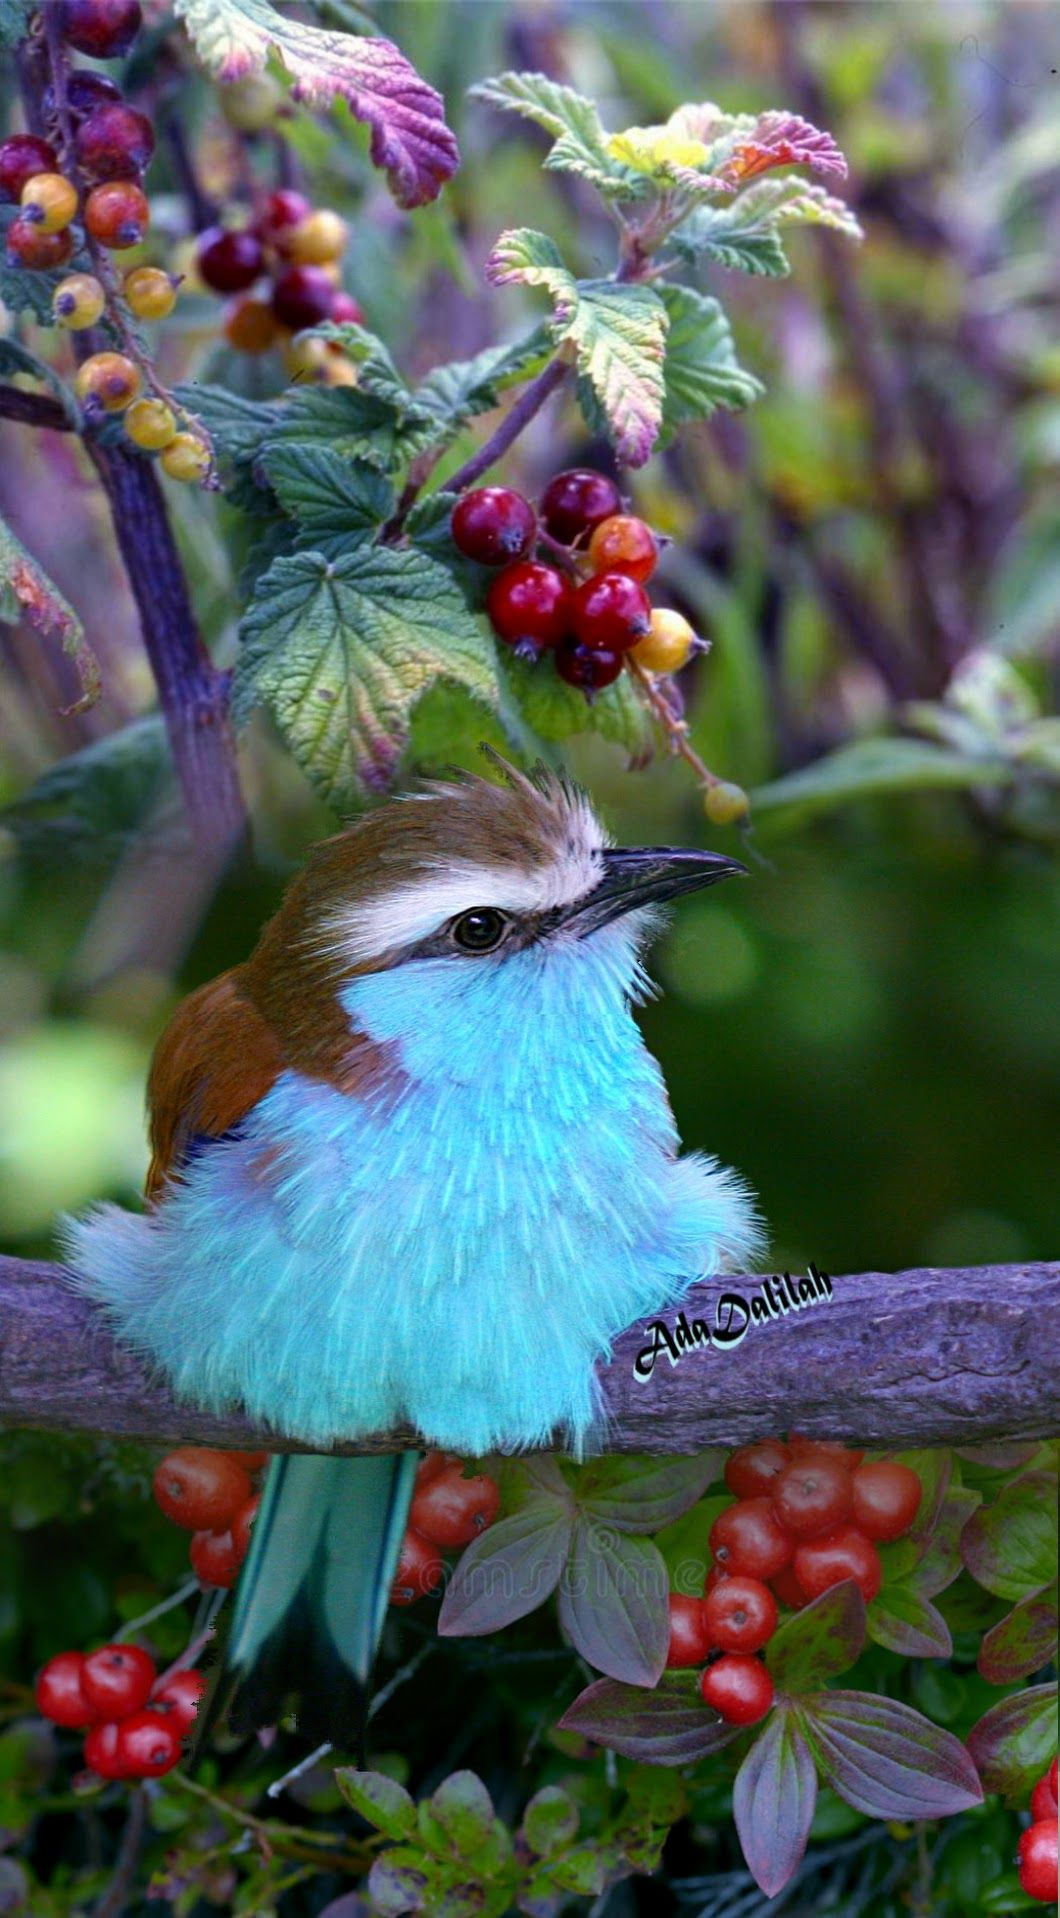 Roller one of the worlds most beautiful birds known for its array roller one of the worlds most beautiful birds known for its array of colors izmirmasajfo